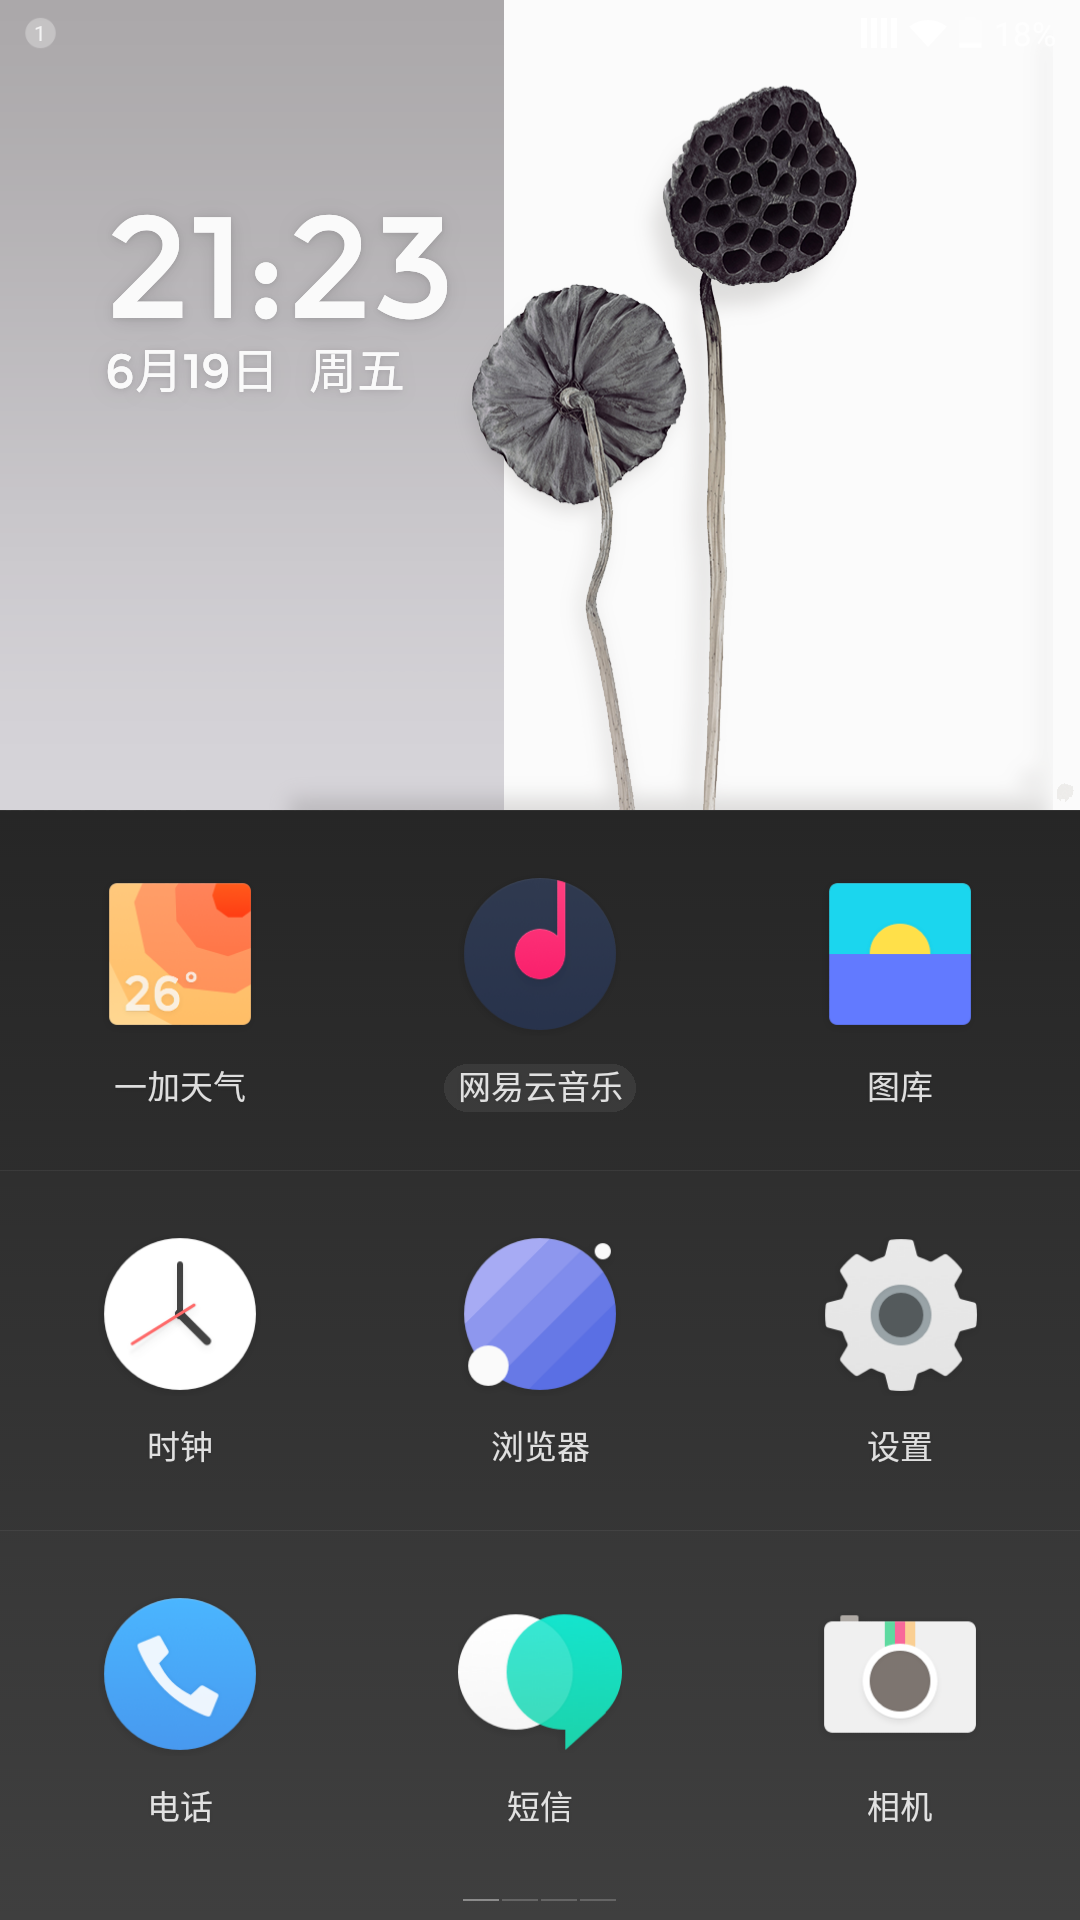 Screenshot_2015-06-19-21-23-40.png